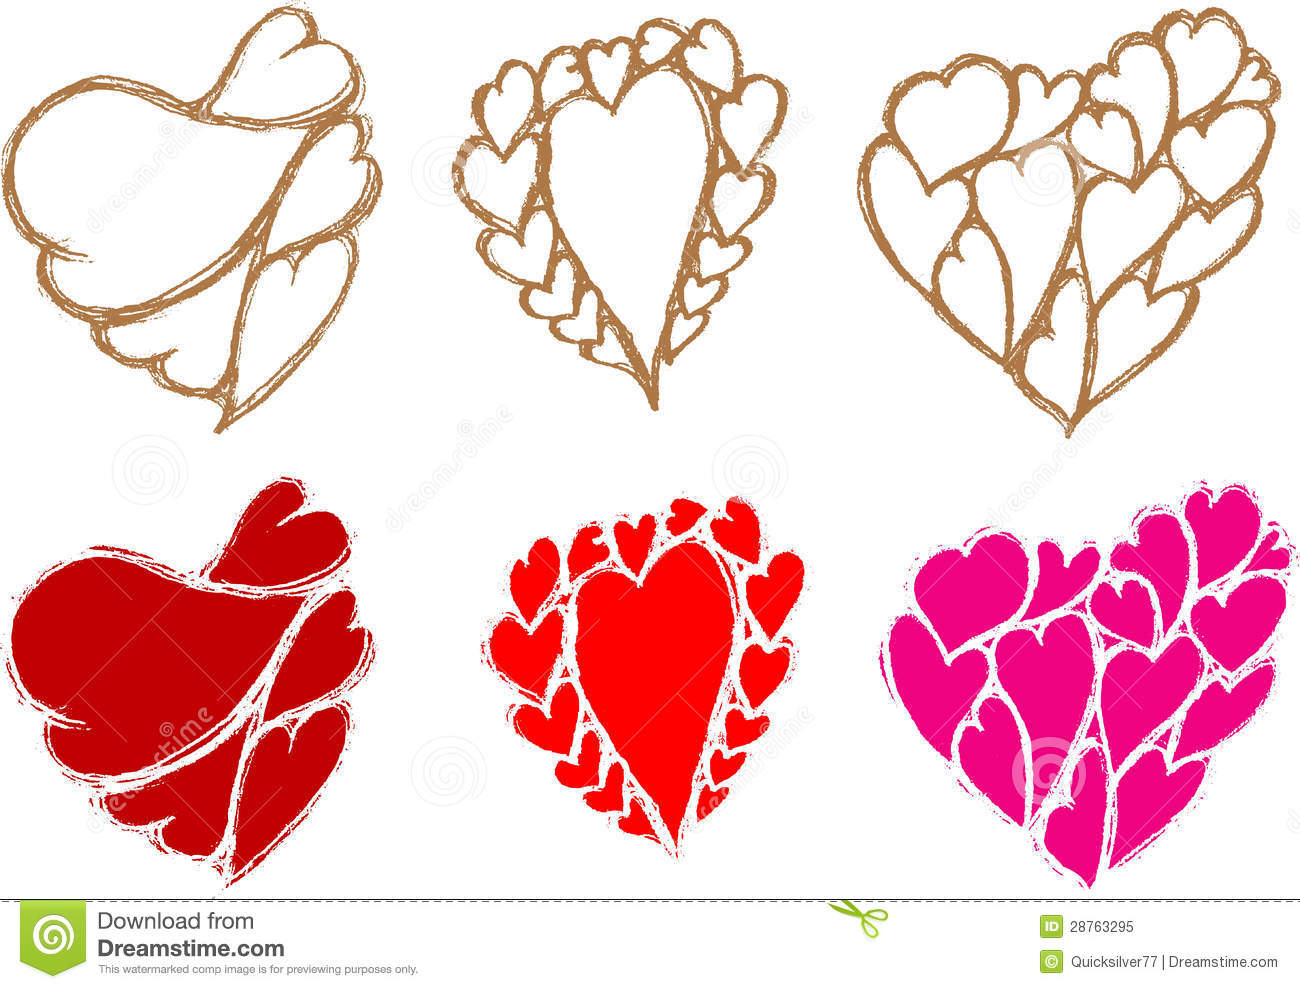 Notebook And Pen Sketch Stock Vector Art More Images Of: Heart Sketch Stock Illustration. Illustration Of Symbol